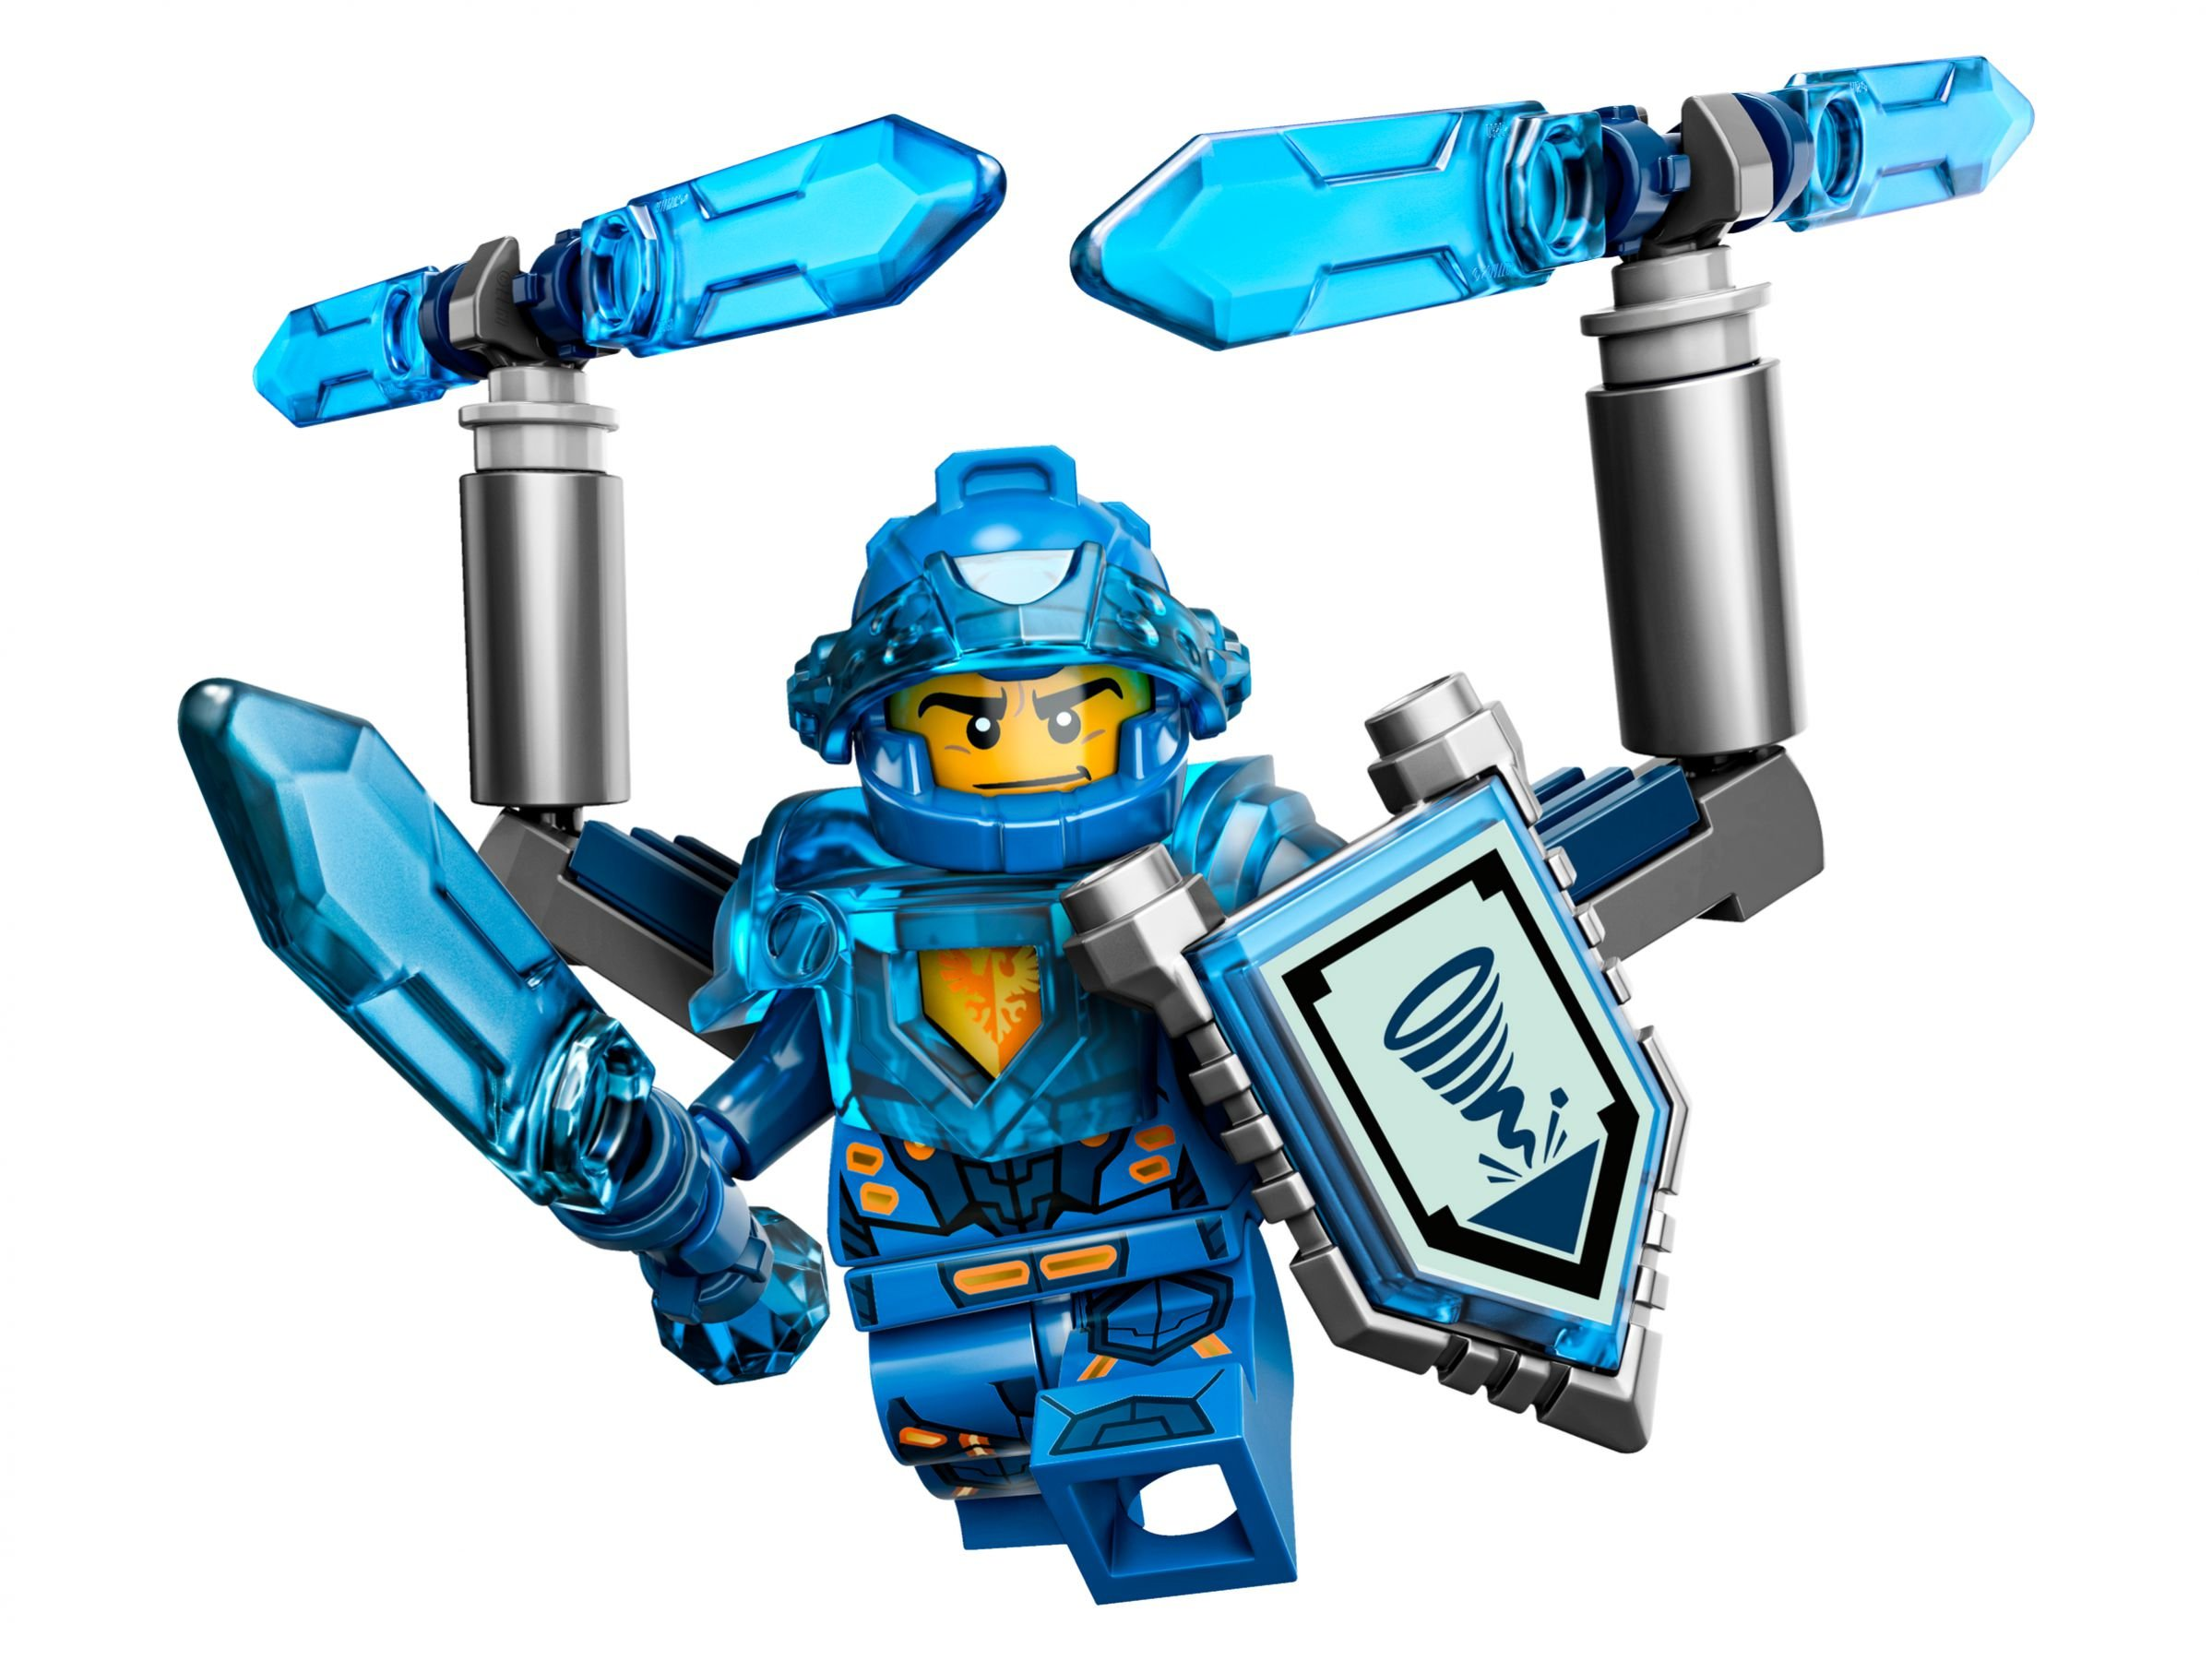 LEGO Nexo Knights 70330 Ultimativer Clay LEGO_70330_alt2.jpg